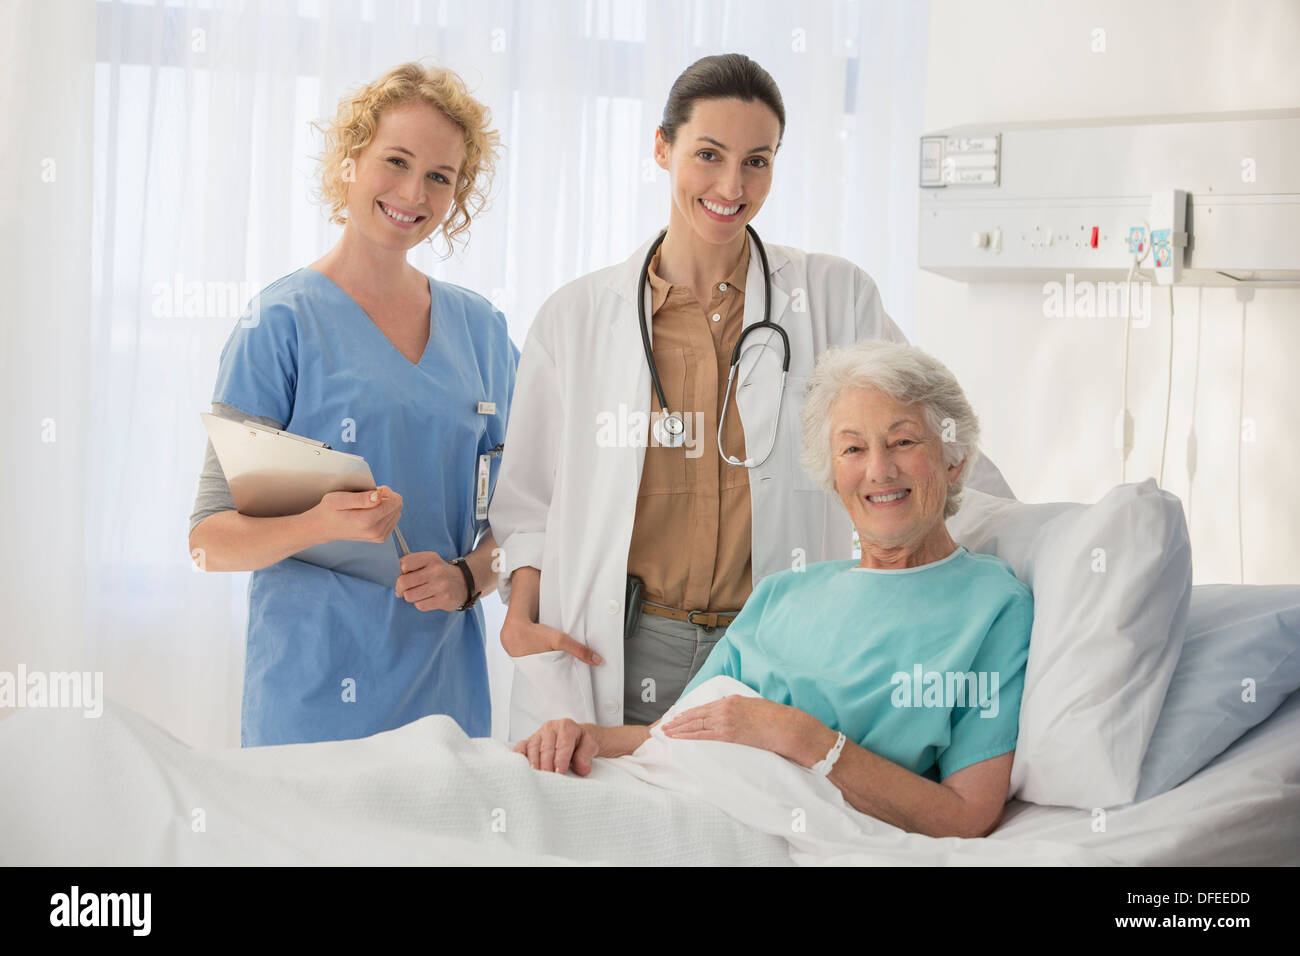 Doctor, nurse and senior patient smiling in hospital room - Stock Image